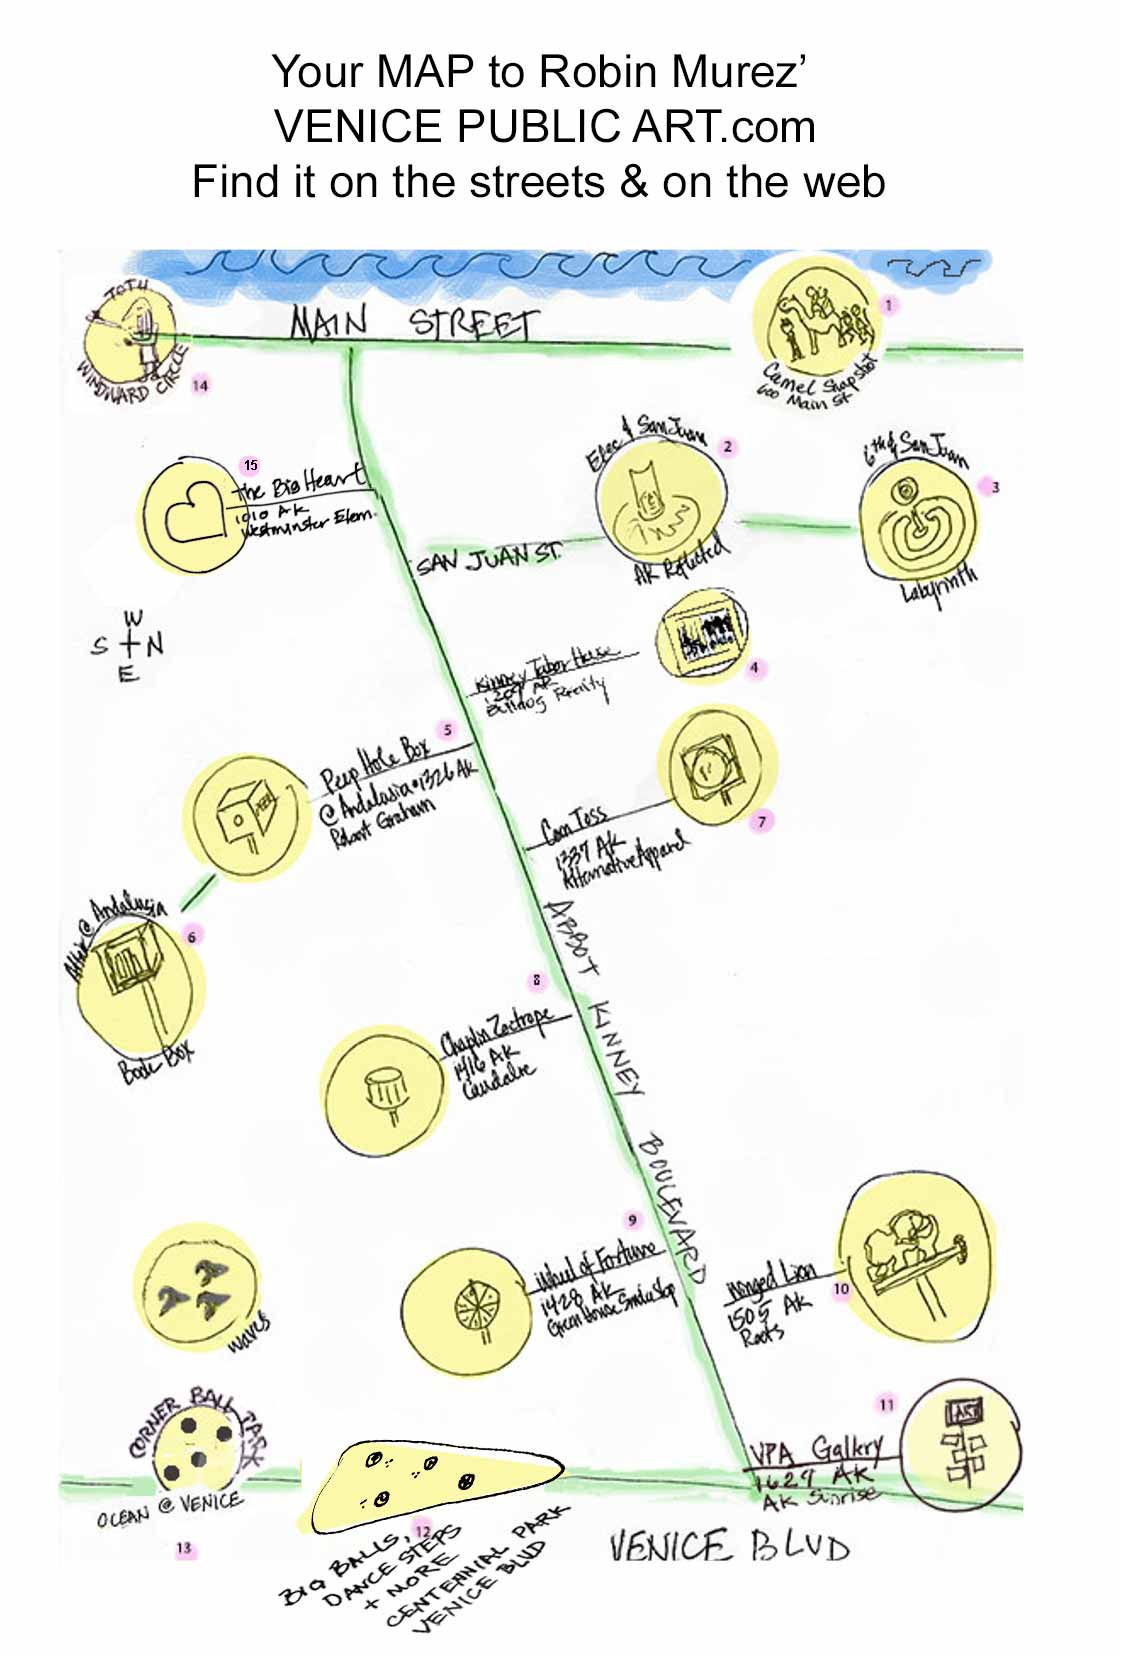 Map of Robin Murez' public art installations via  Venice Public Art